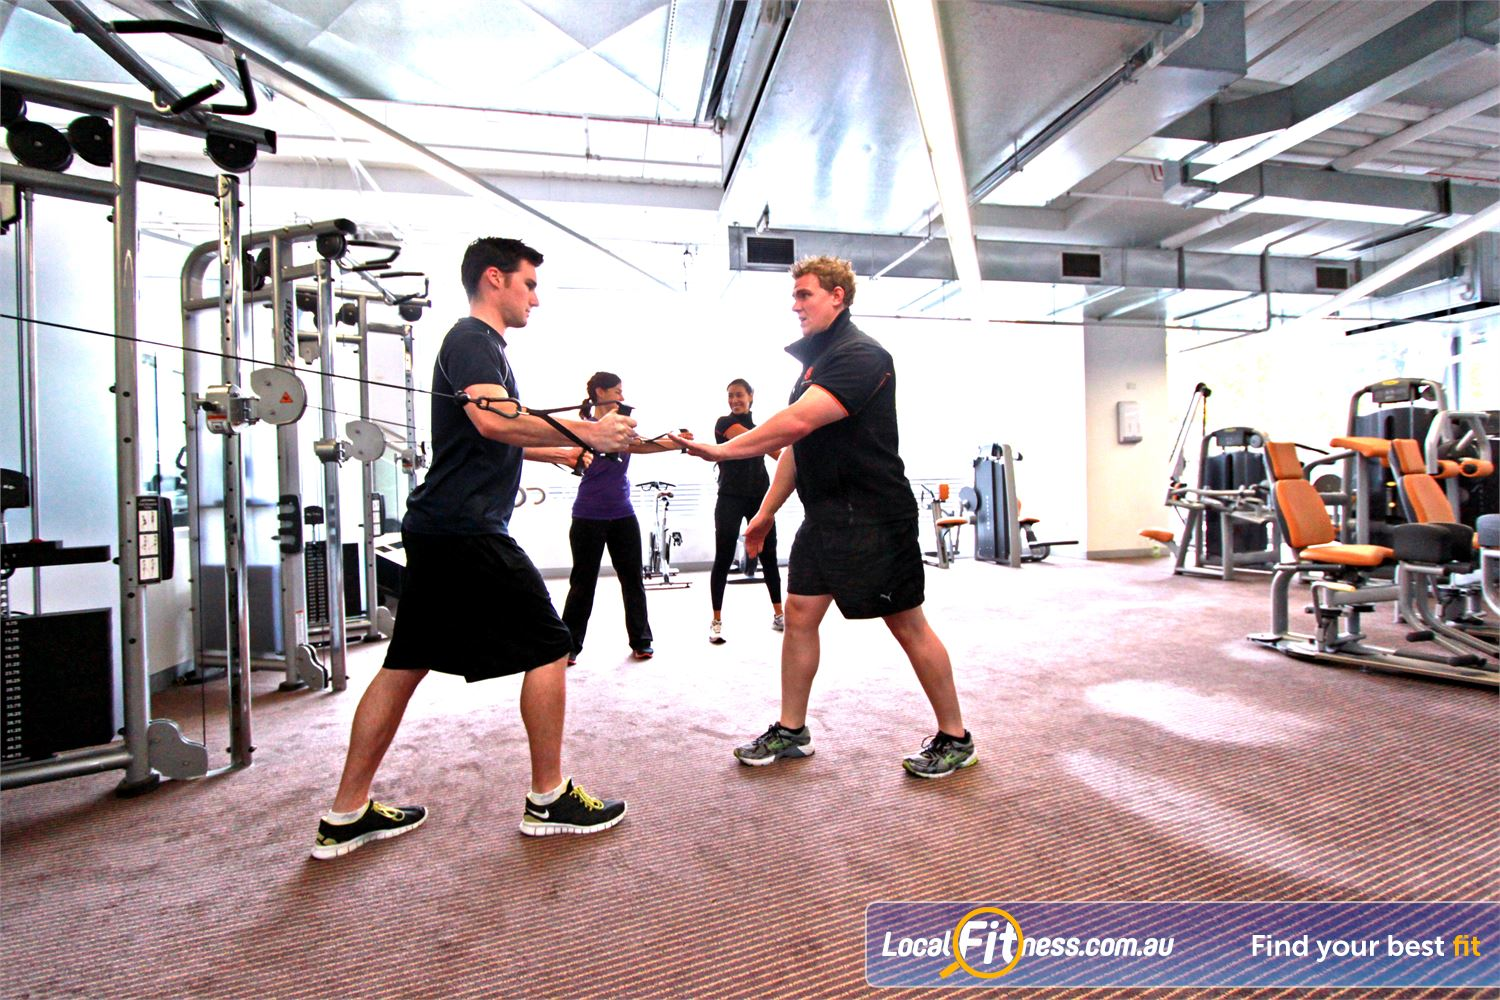 South Pacific Health Clubs Melbourne Vary your strength training with Kettlebell training or TRX.